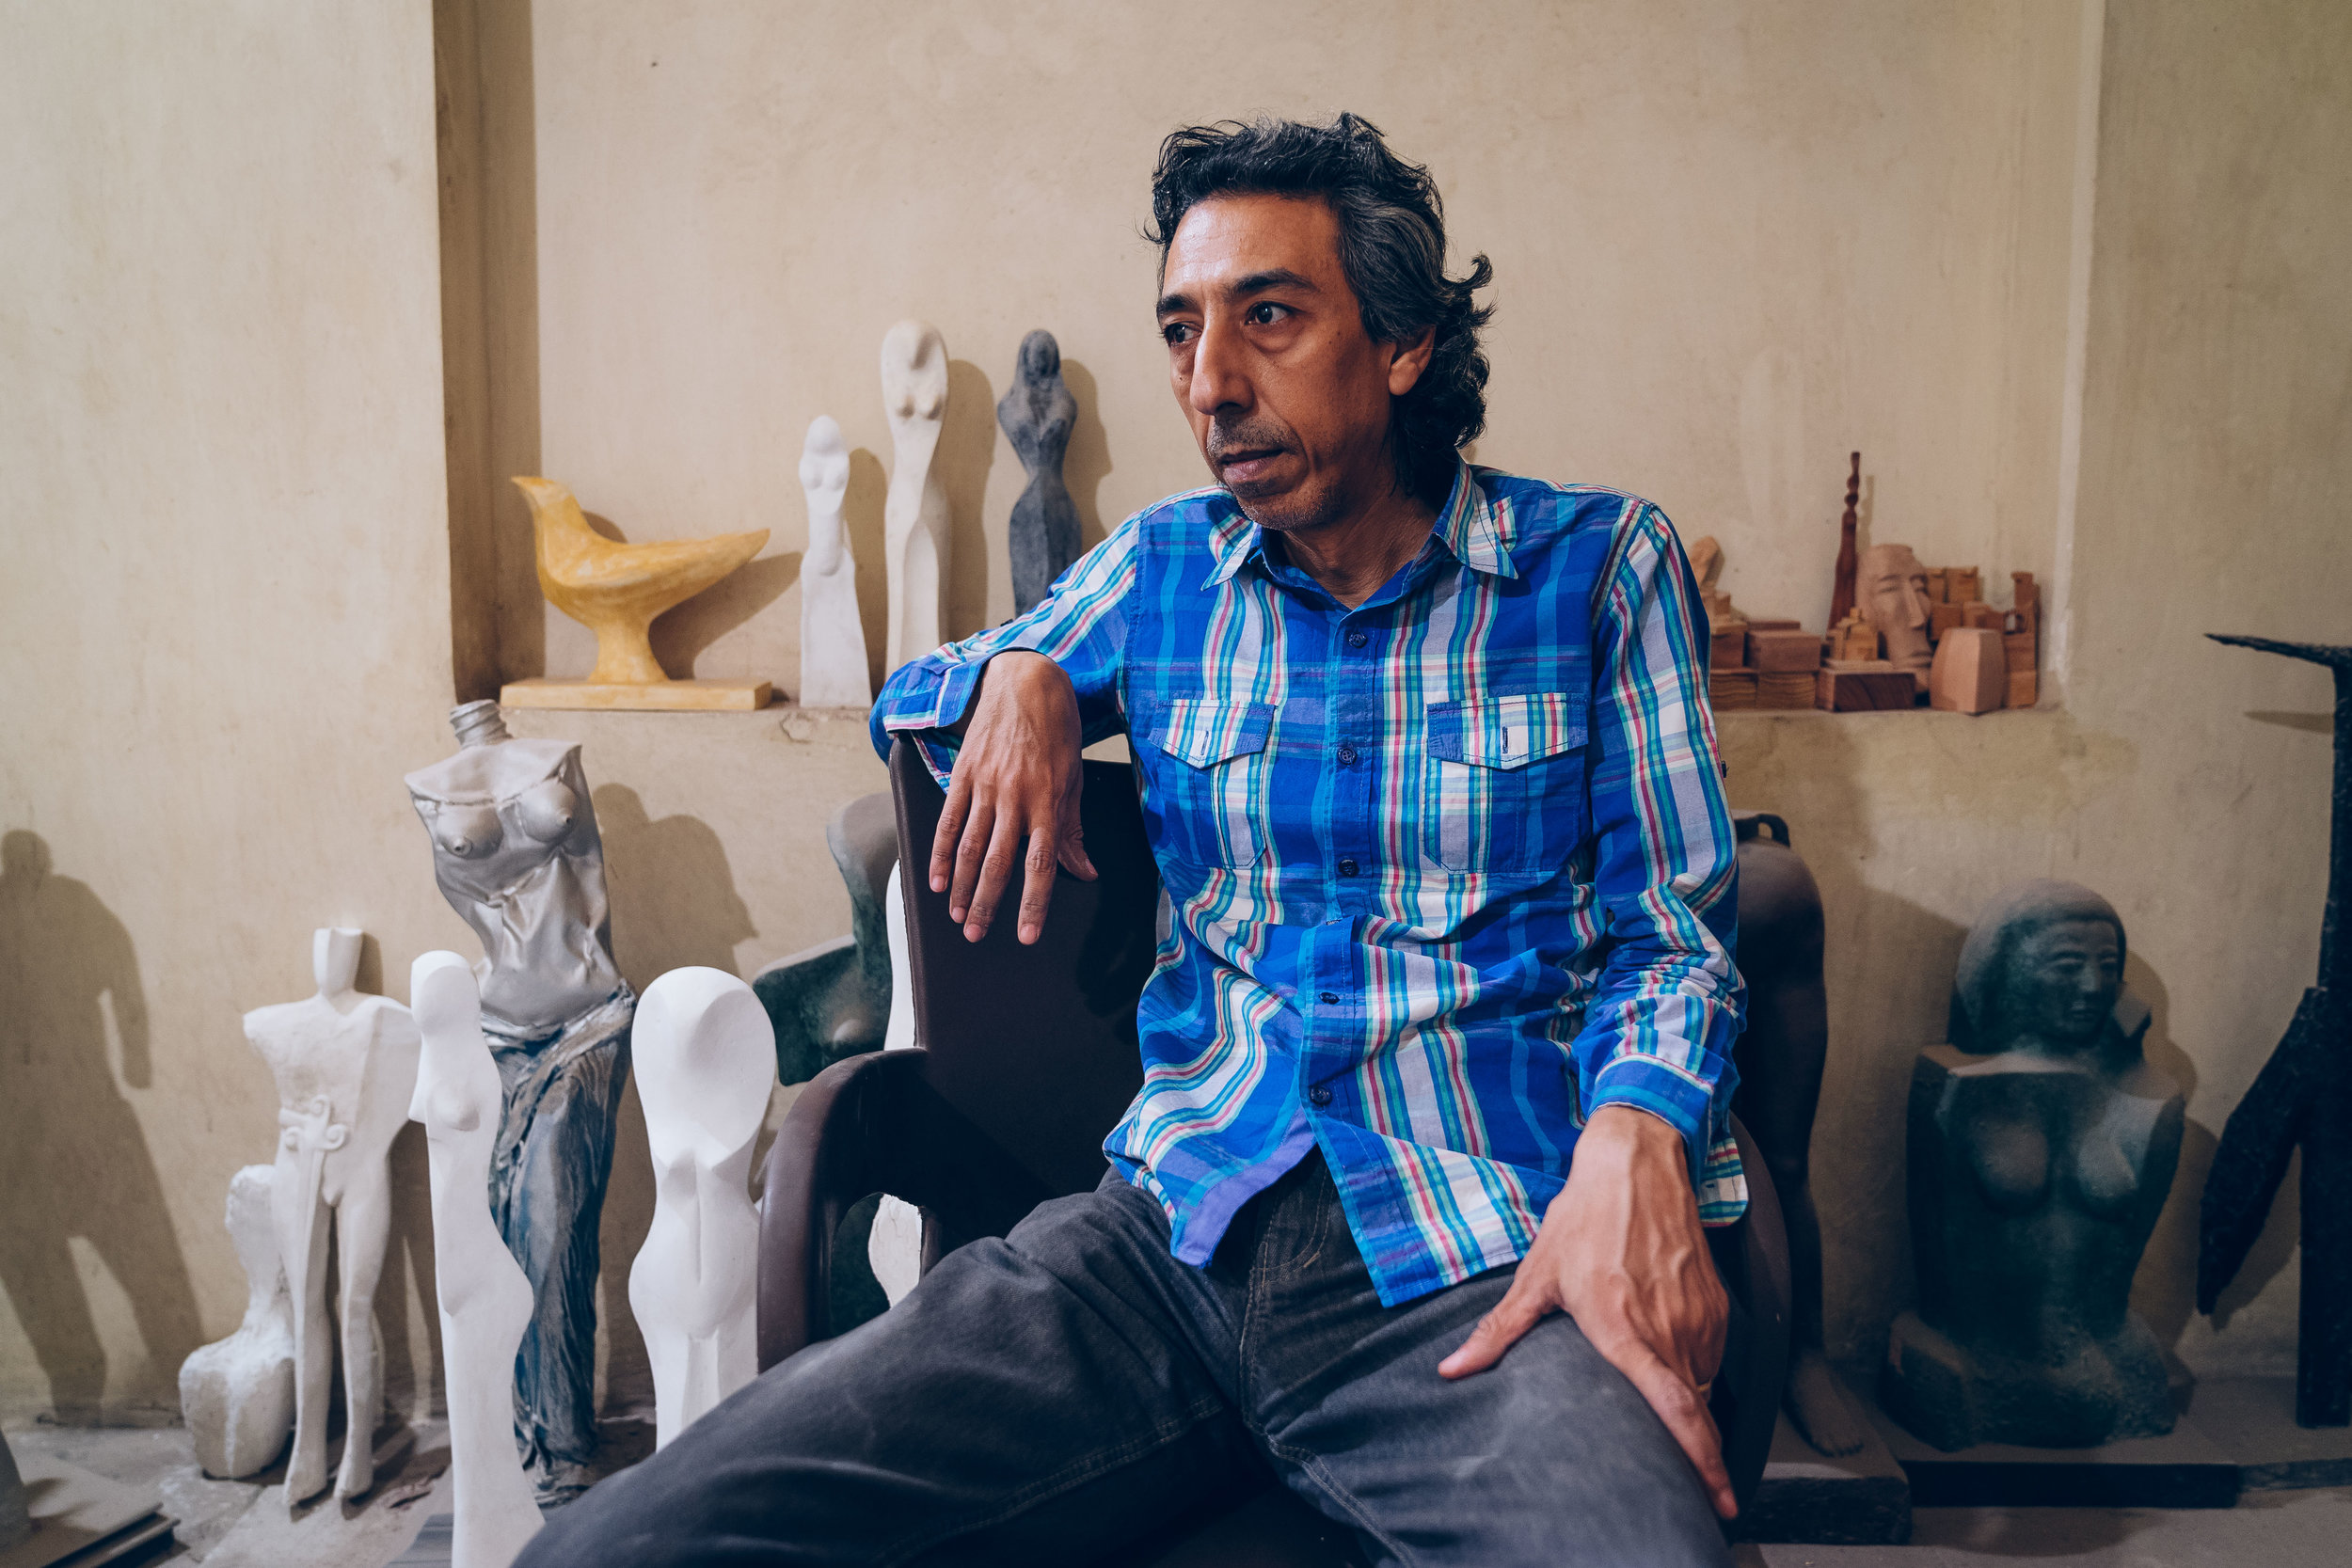 Hesham Nawwar, sculptor and painter, in his studio